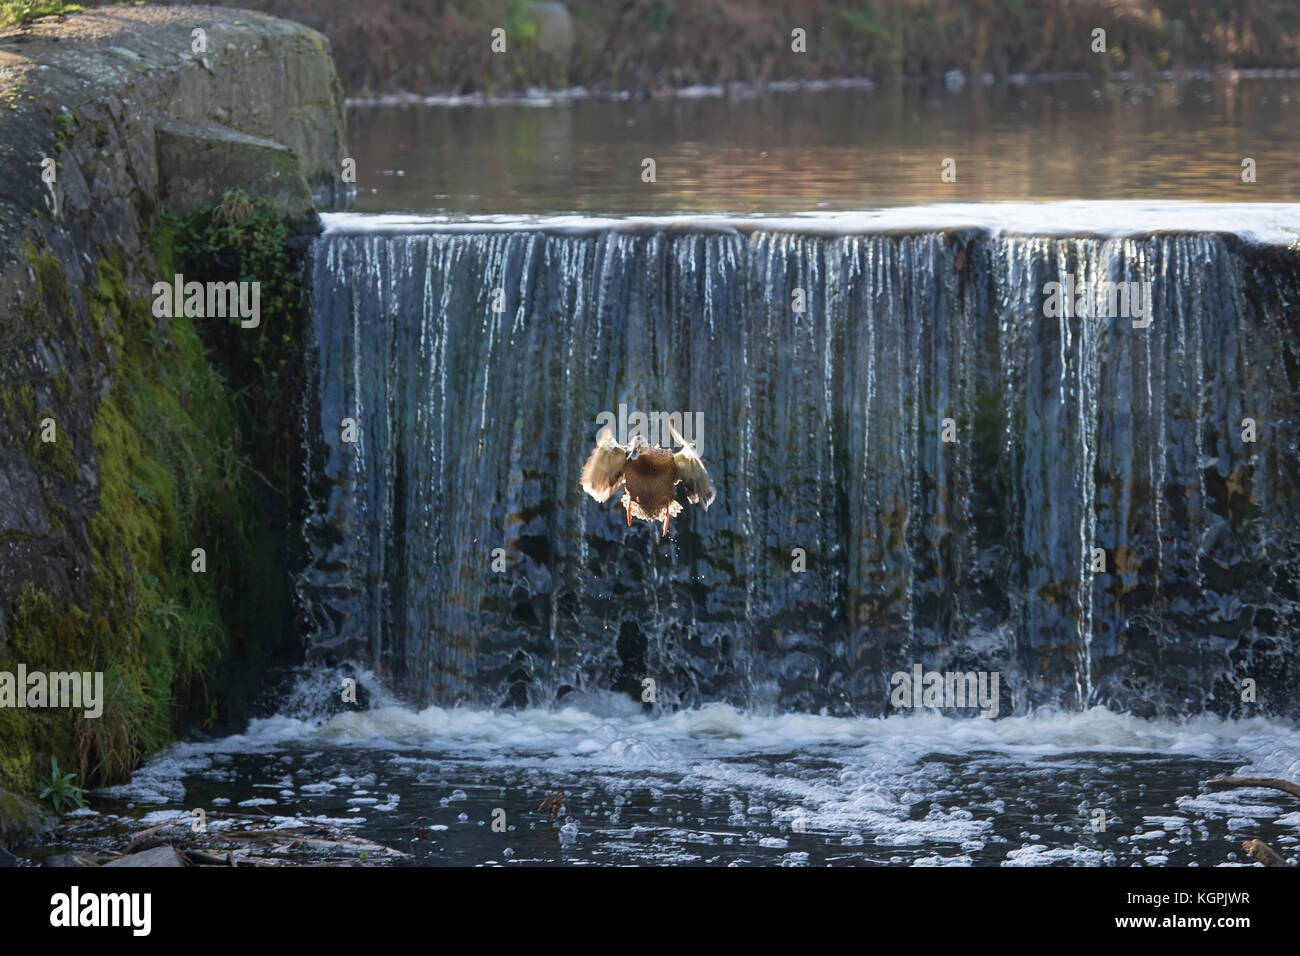 Female Mallard duck Anas Platyrhynchos plunging from the top of a waterfall into a river - Stock Image